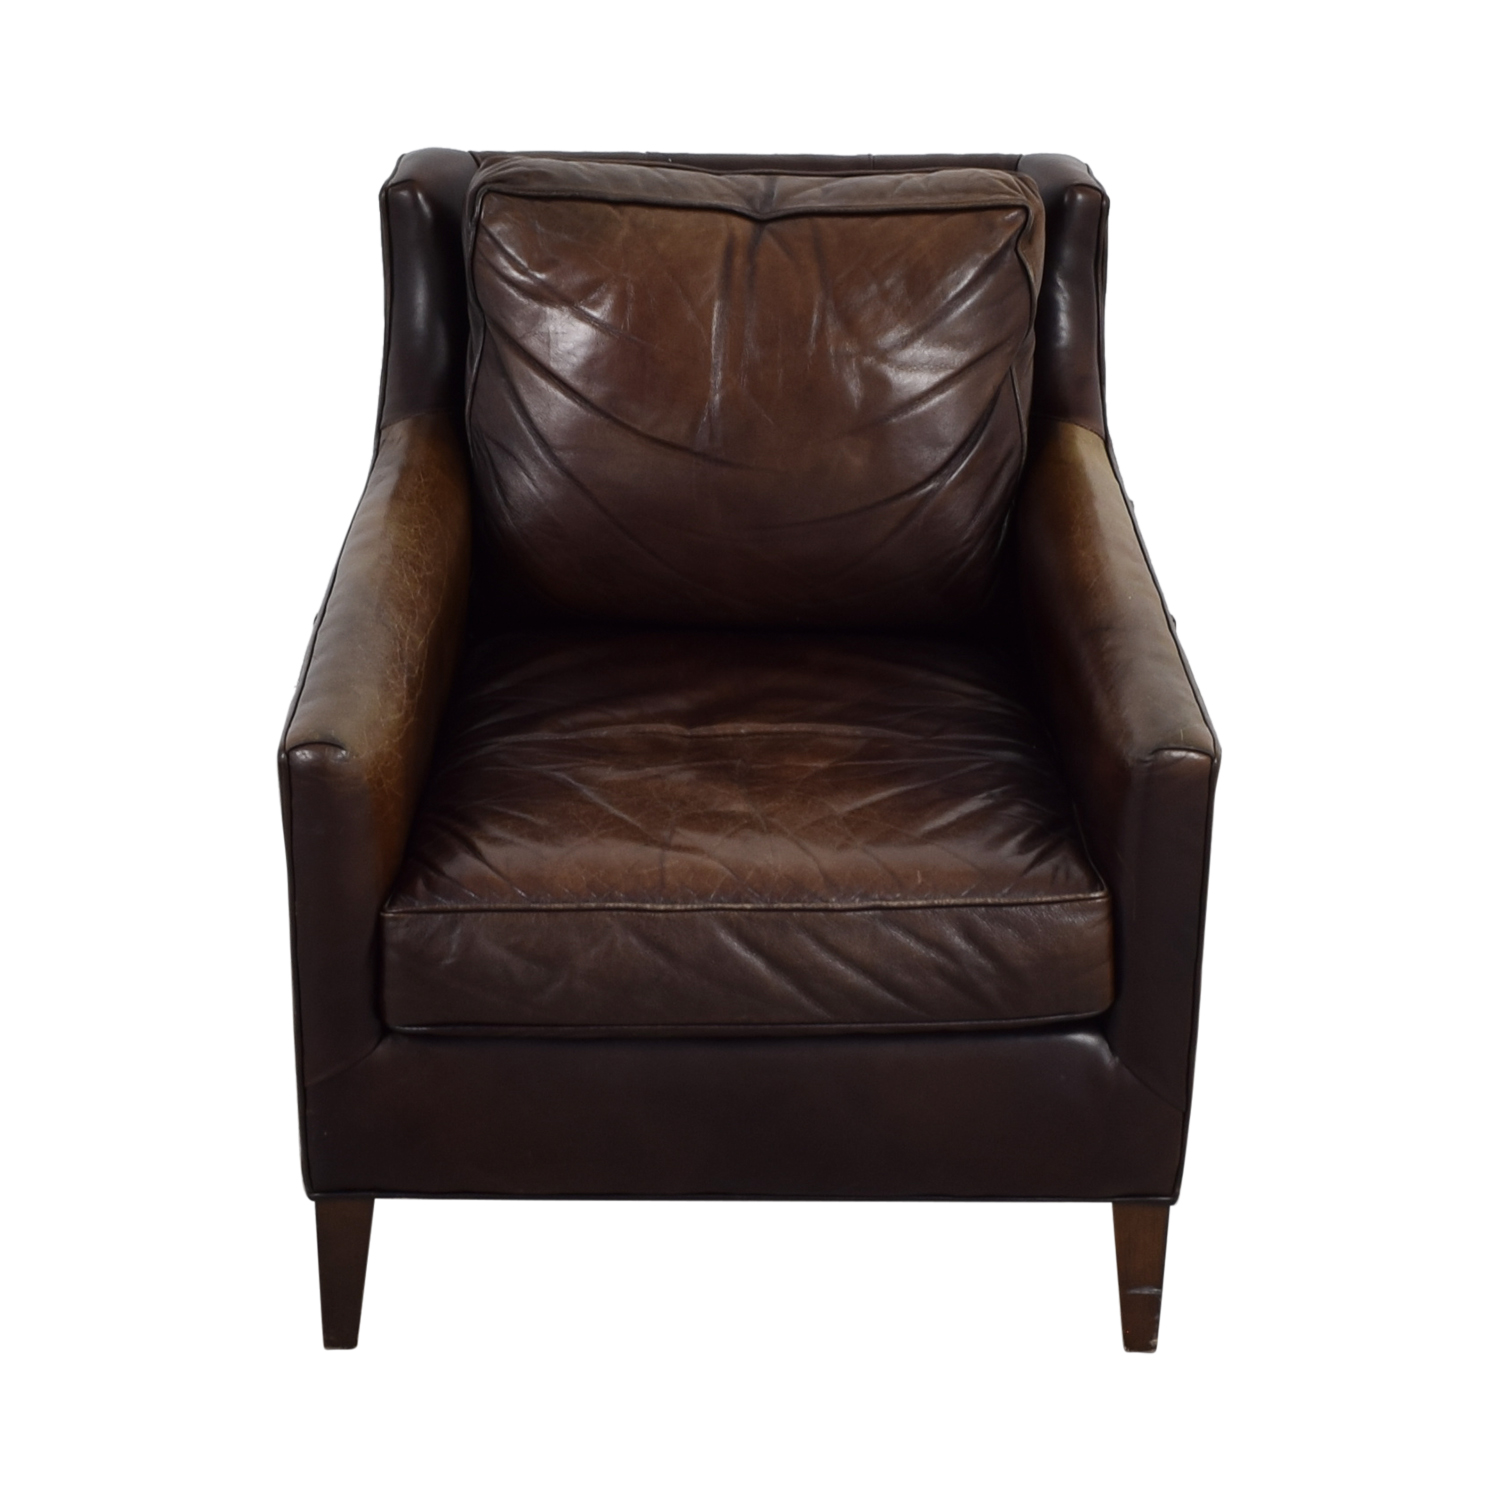 62% OFF - Pottery Barn Pottery Barn Brown Leather Armchair ...